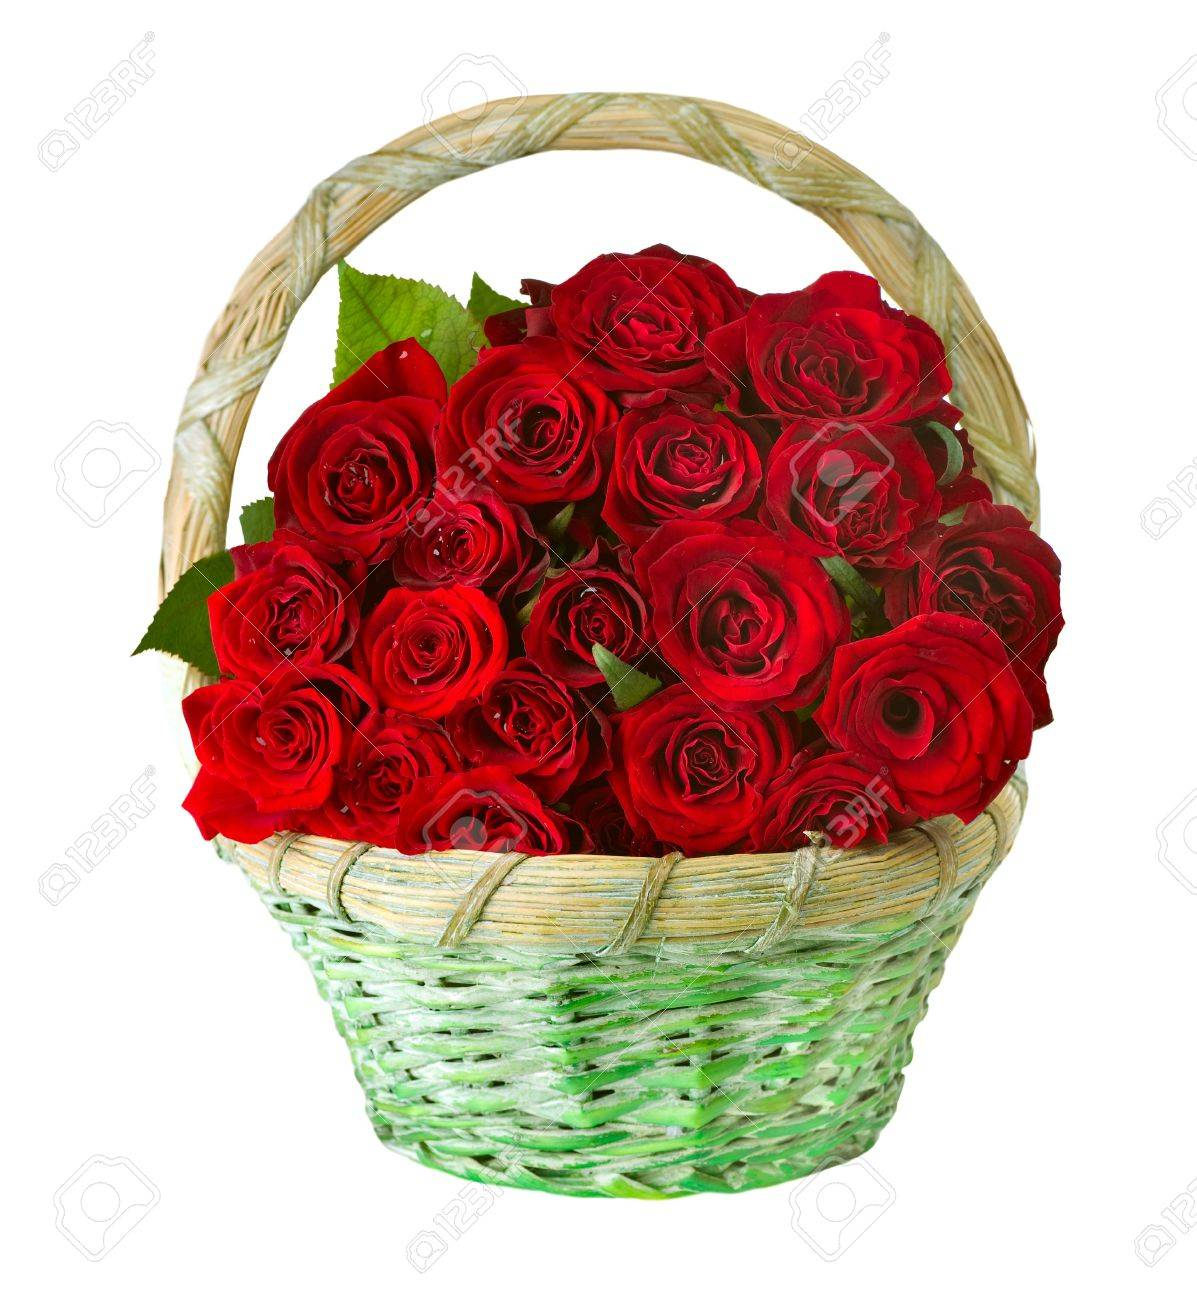 Roses in the Basket Stock Photo - 12382010